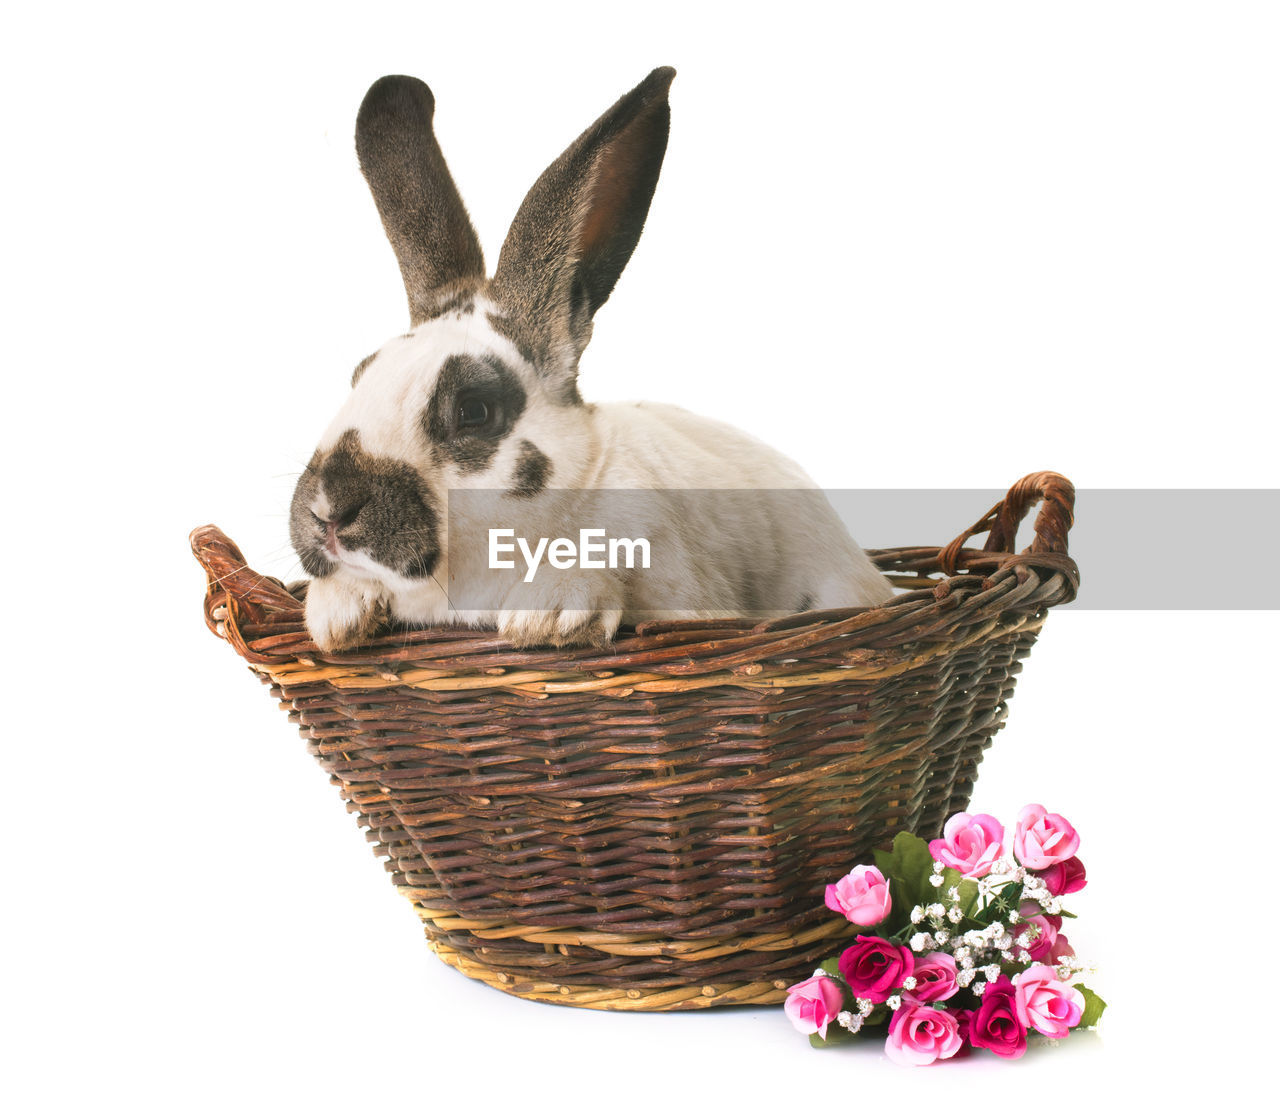 Rabbit In Basket By Flowers Against White Background